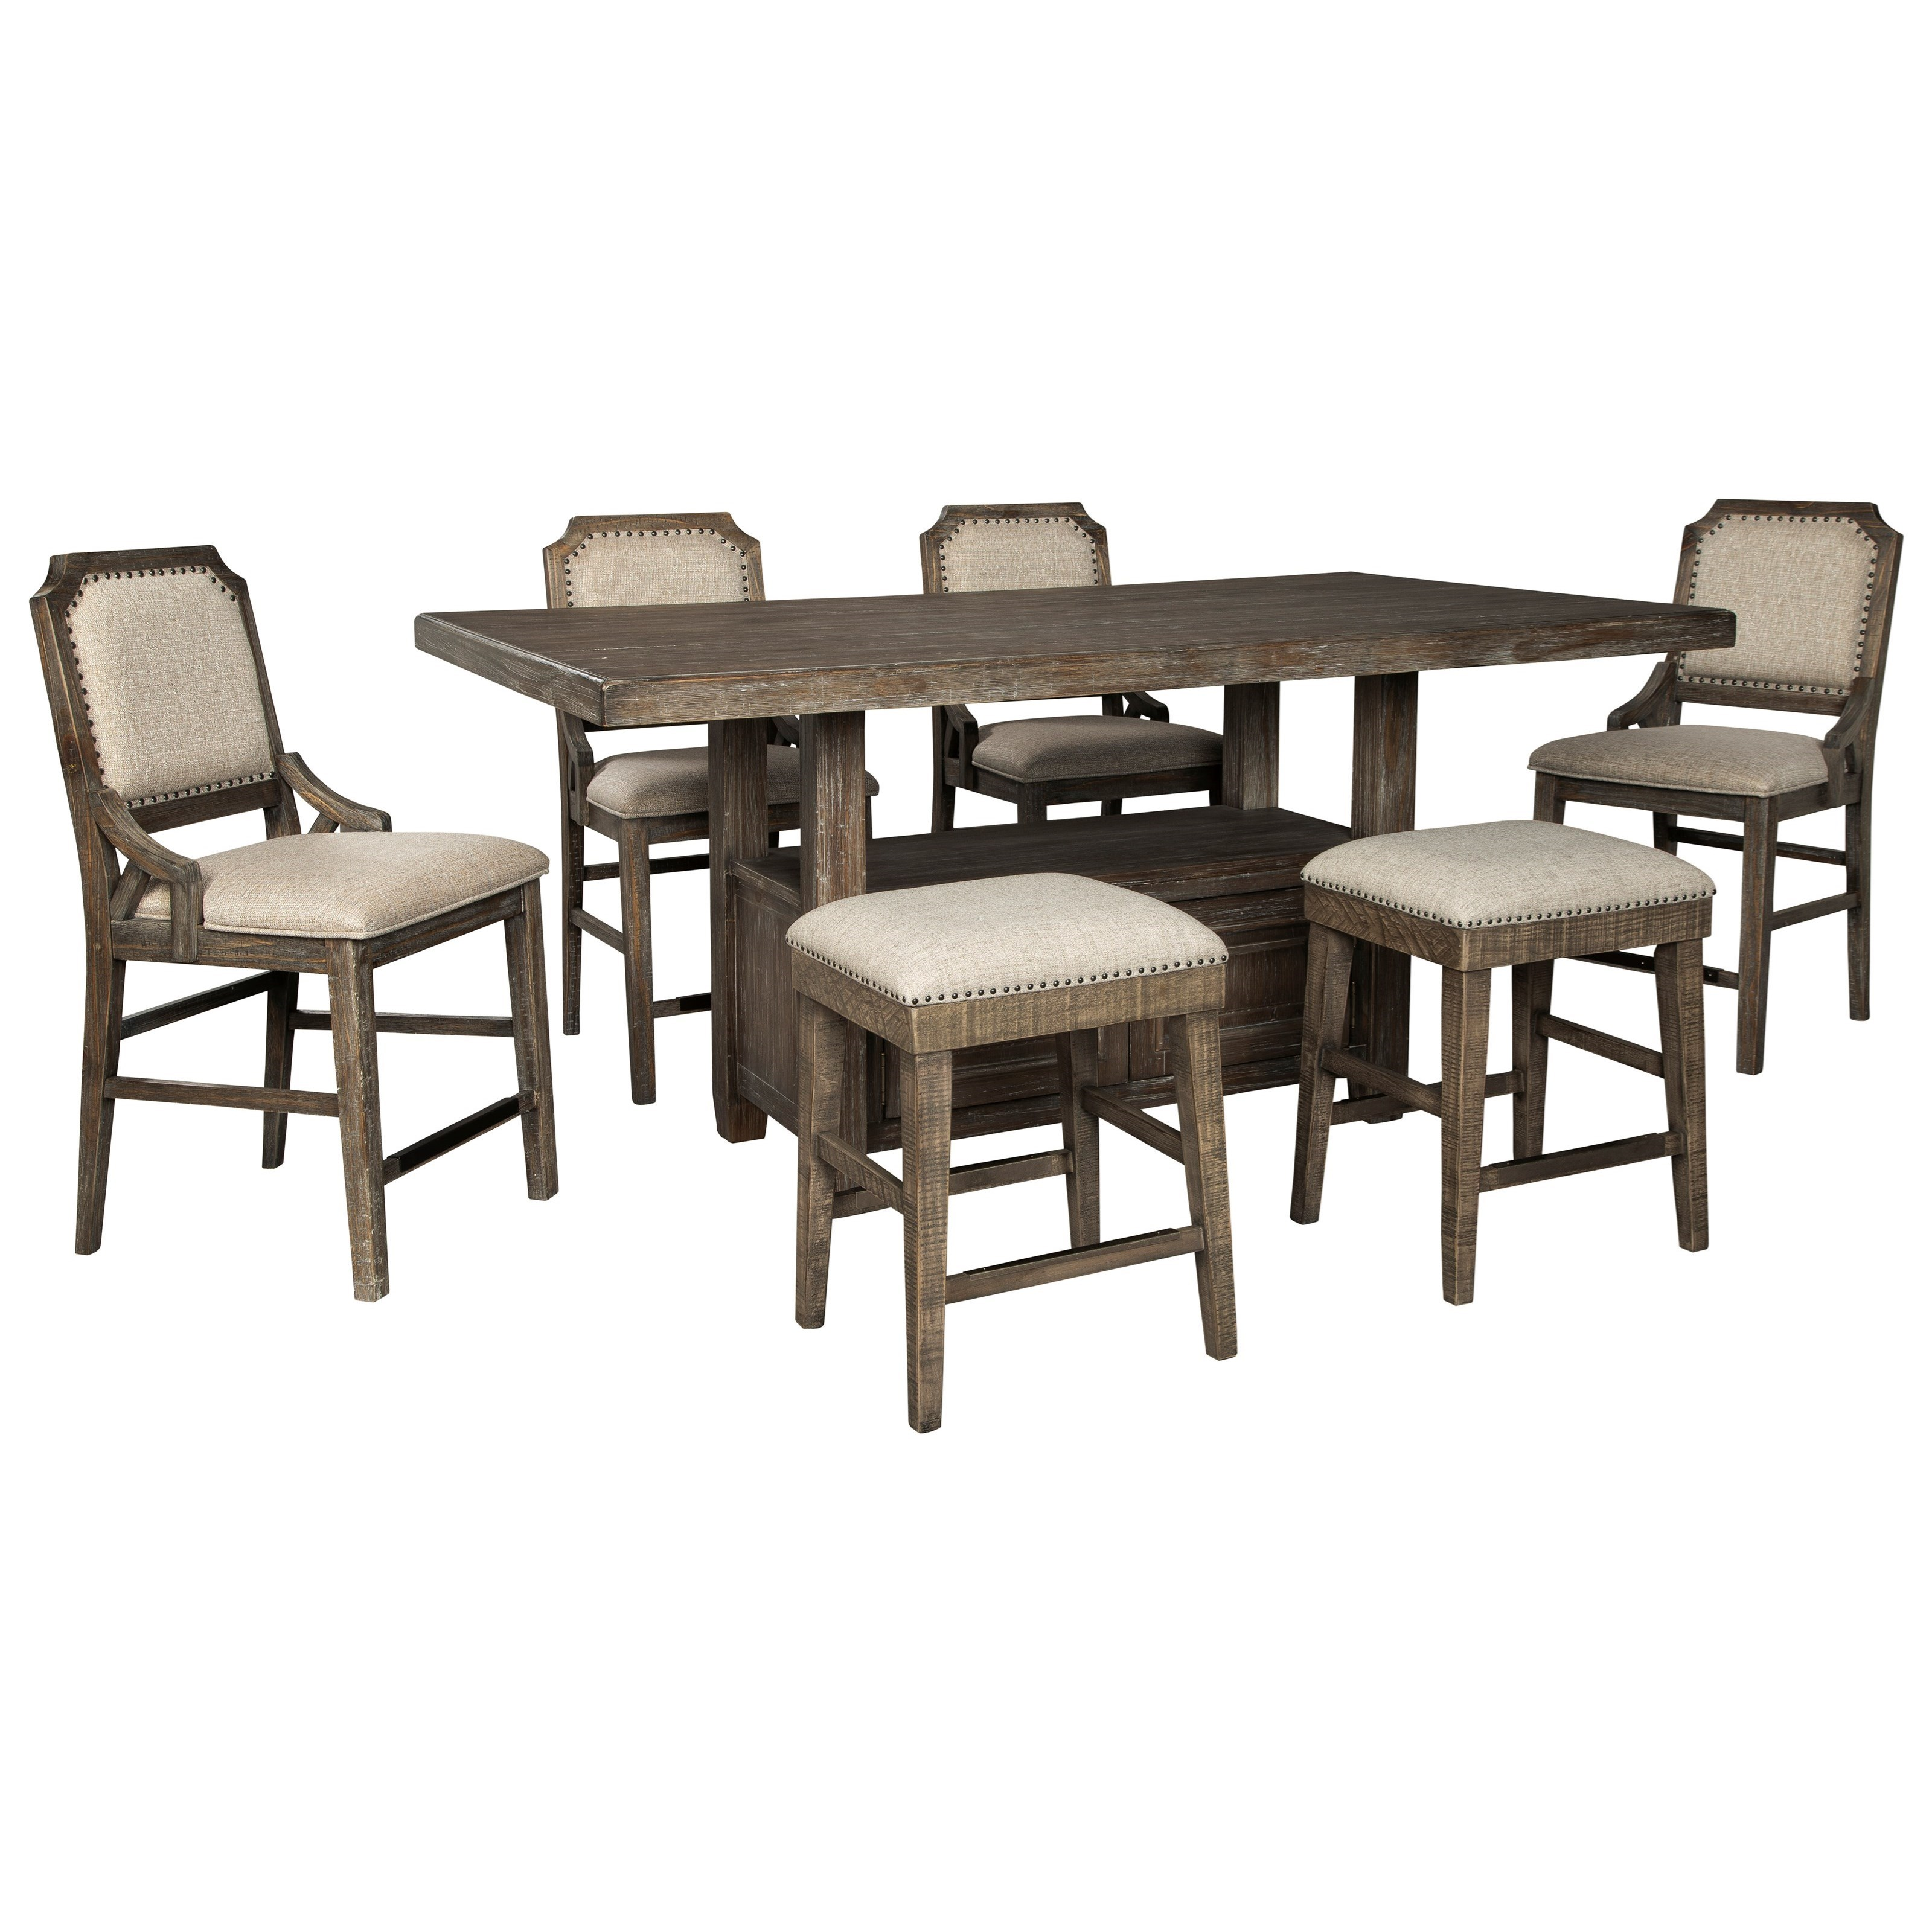 7-Piece Rect. Counter Table w/ Storage Set